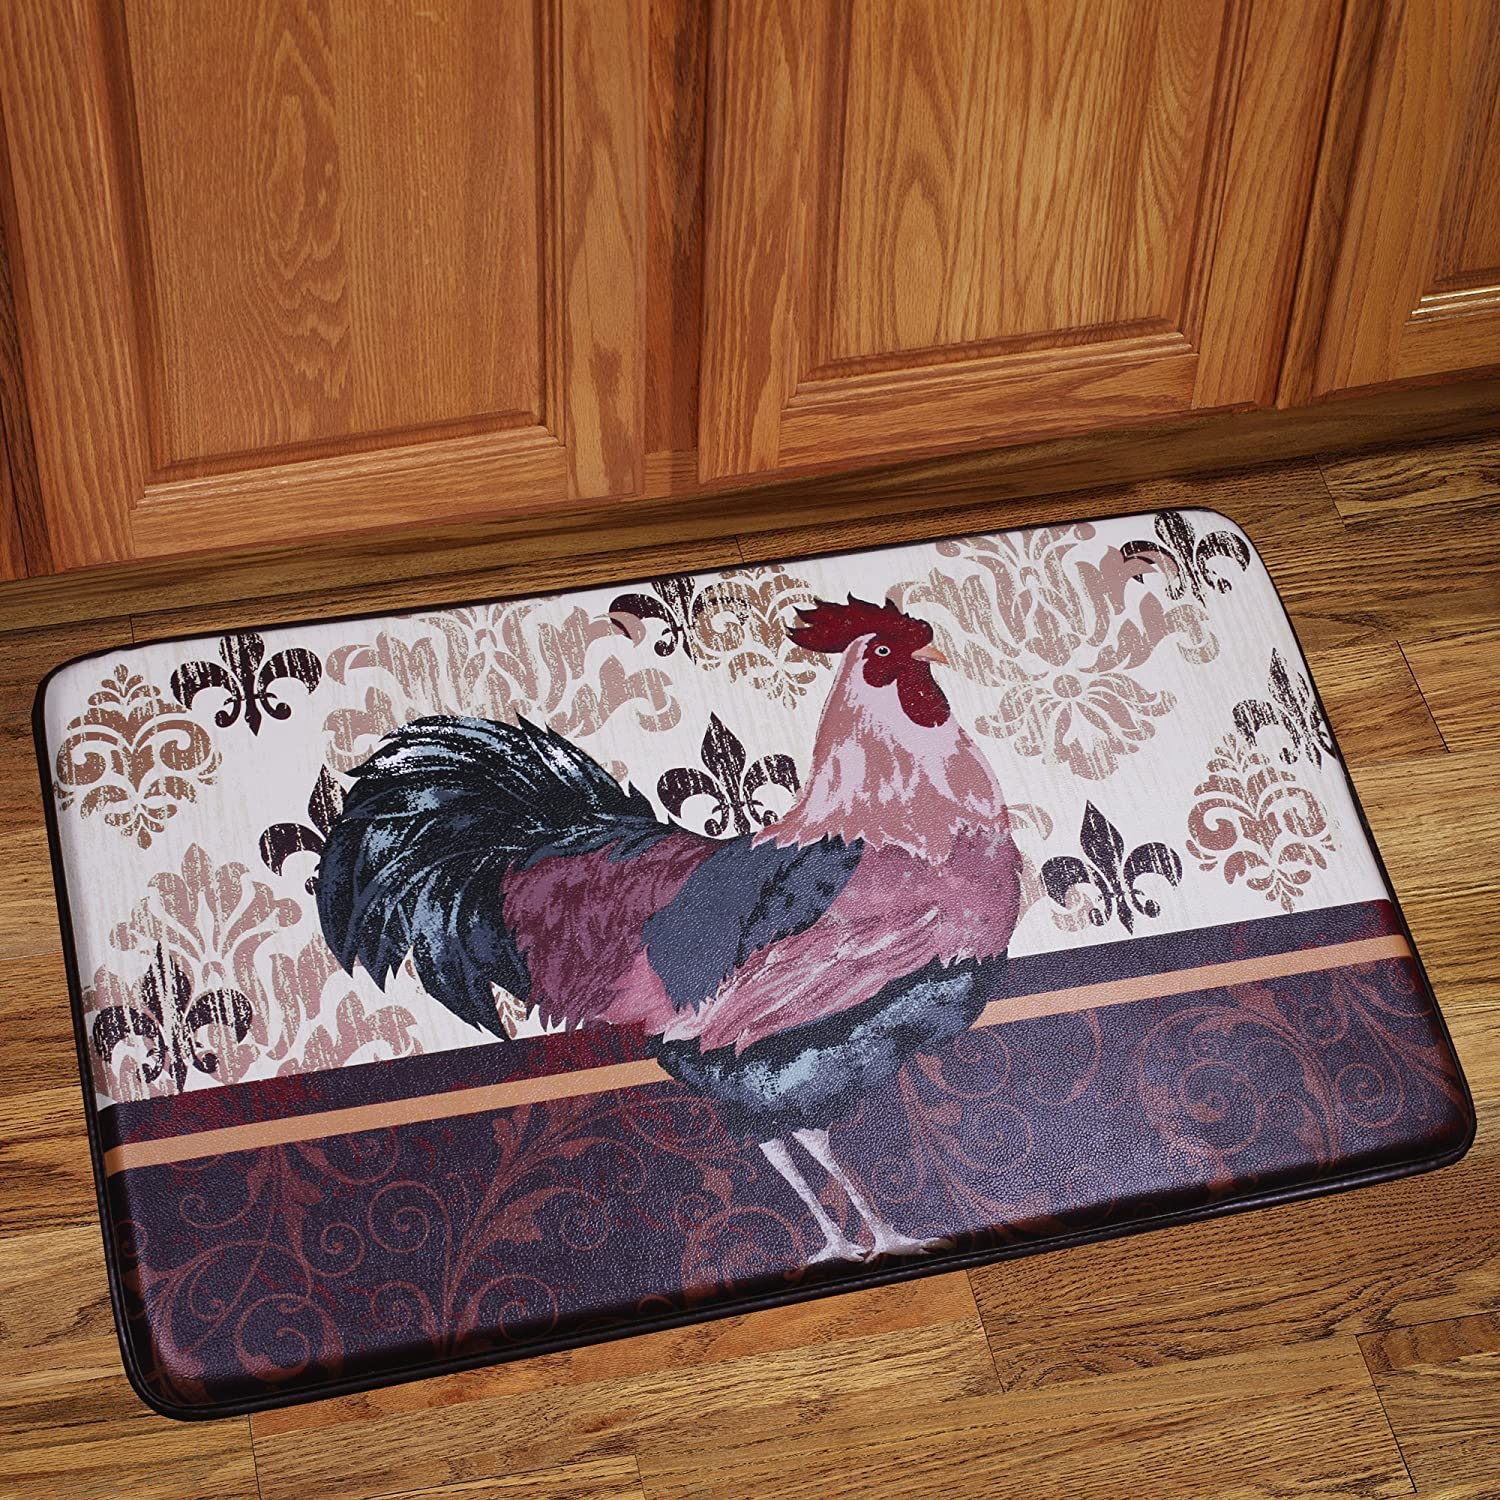 zthl at foam sl rugs also fabulous kitchen th pictures home memory costco mats mat